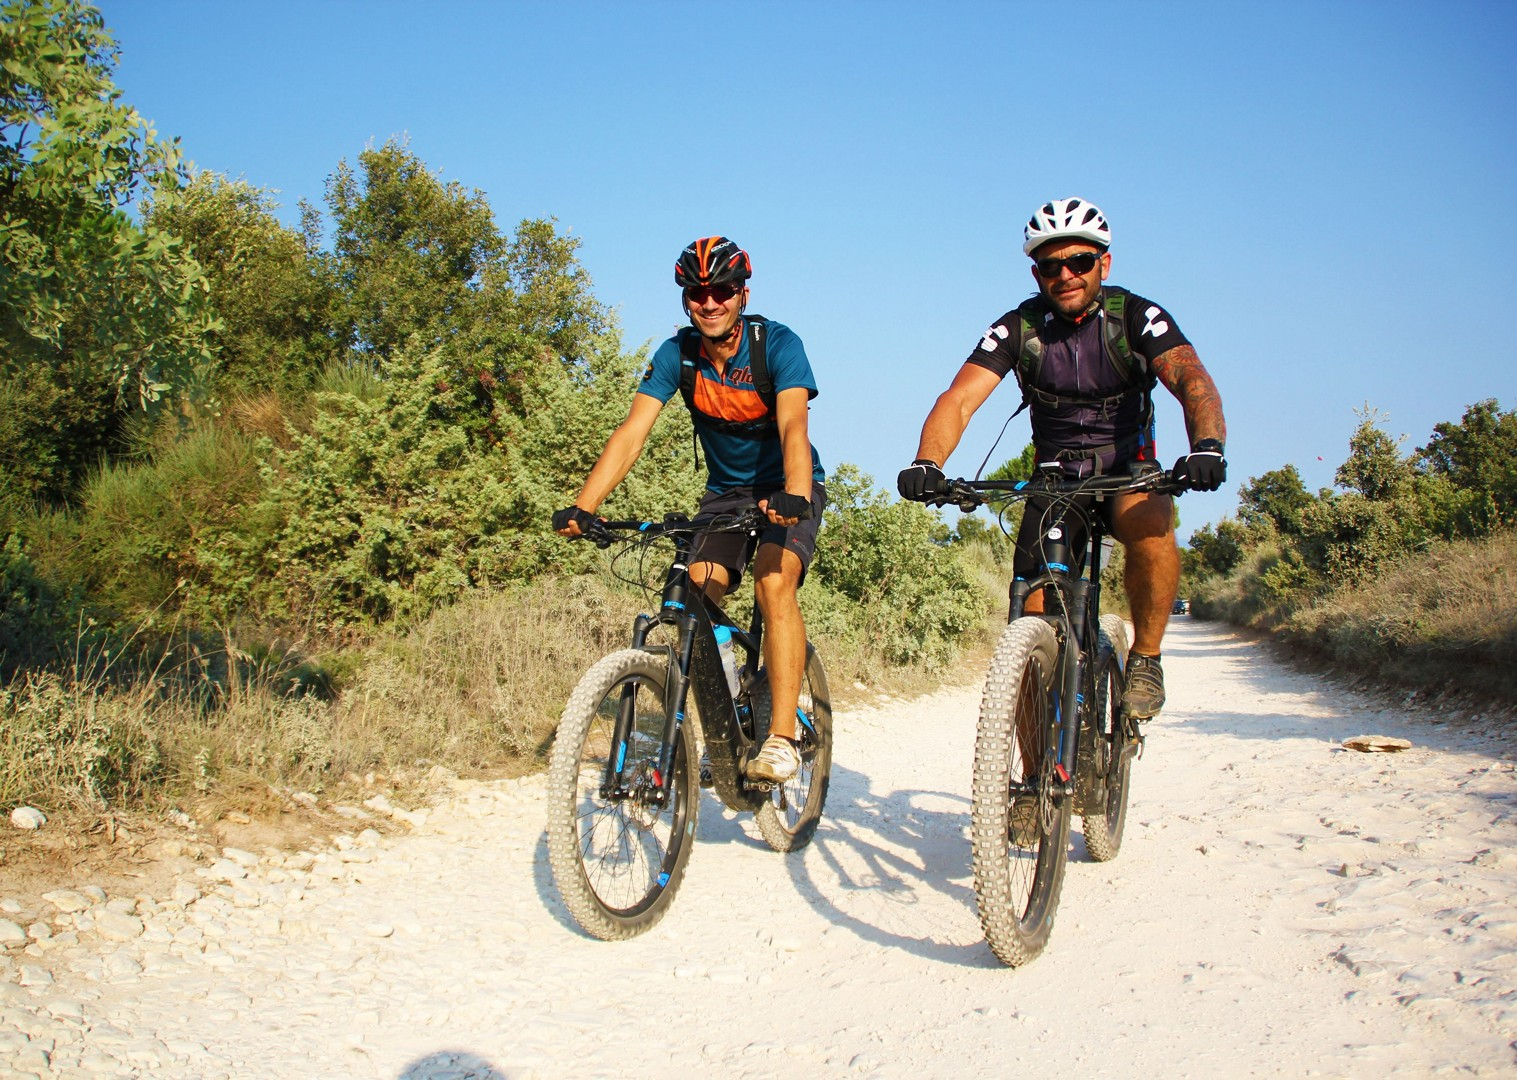 parenzana-guided-mountain-biking-holiday-croatia-terra-magica.JPG - Croatia - Terra Magica - Mountain Biking